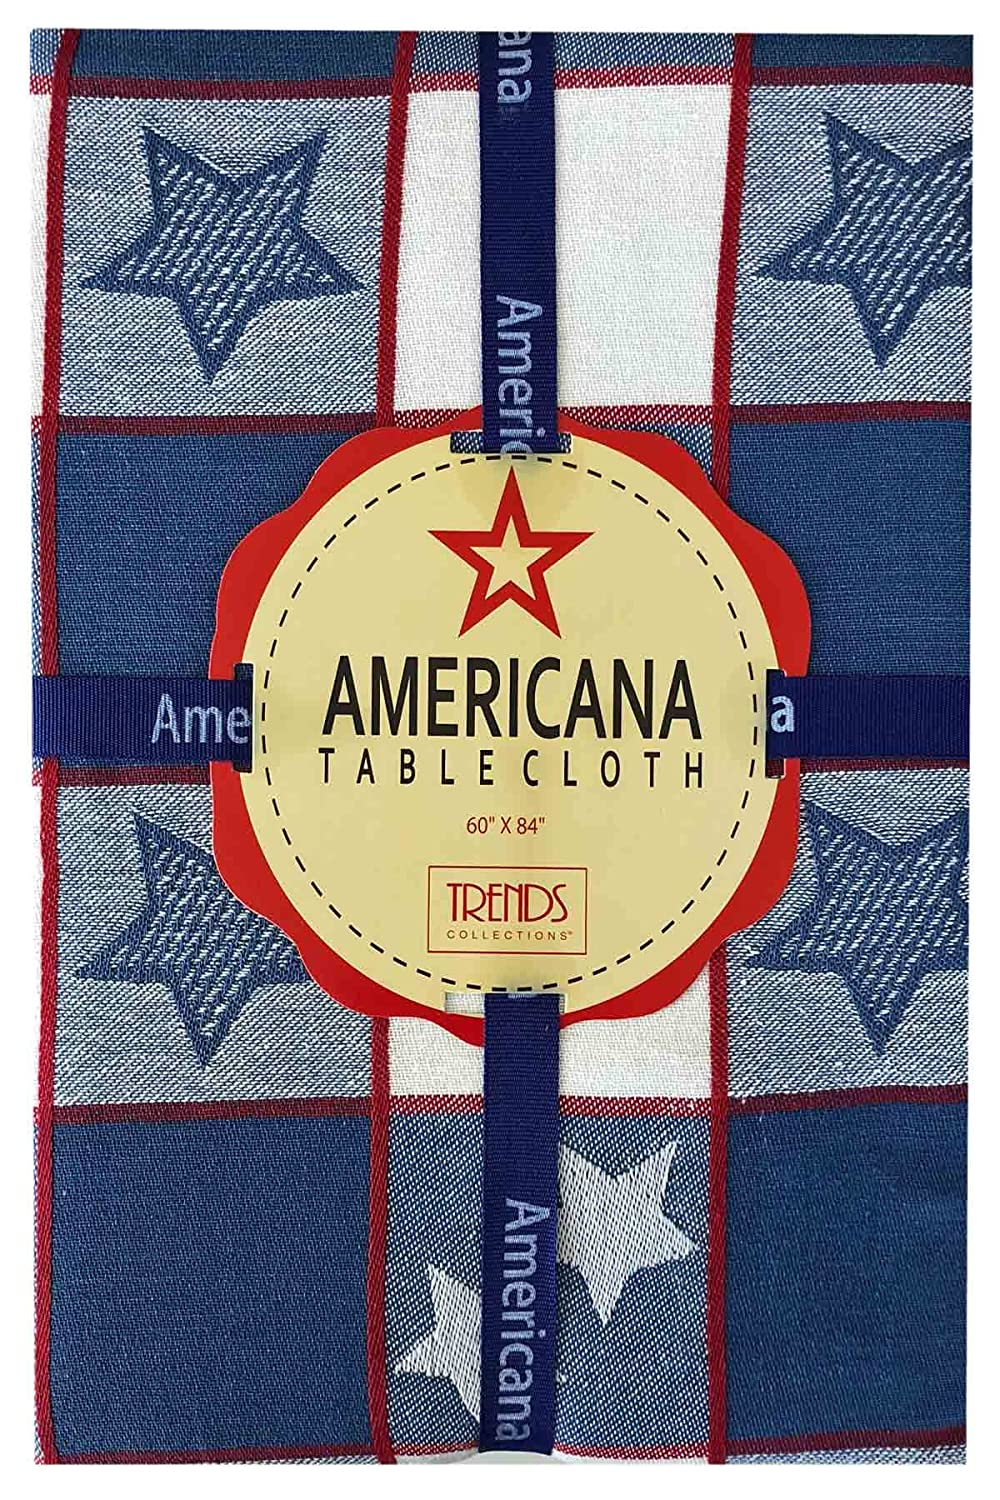 70 Round 70 Round Americana Patriotic Star and Stripes Cotton Jacquard Weave Fabric Tablecloth White and Blue Heavy Weight Tablecloth by Lintex Festive Red